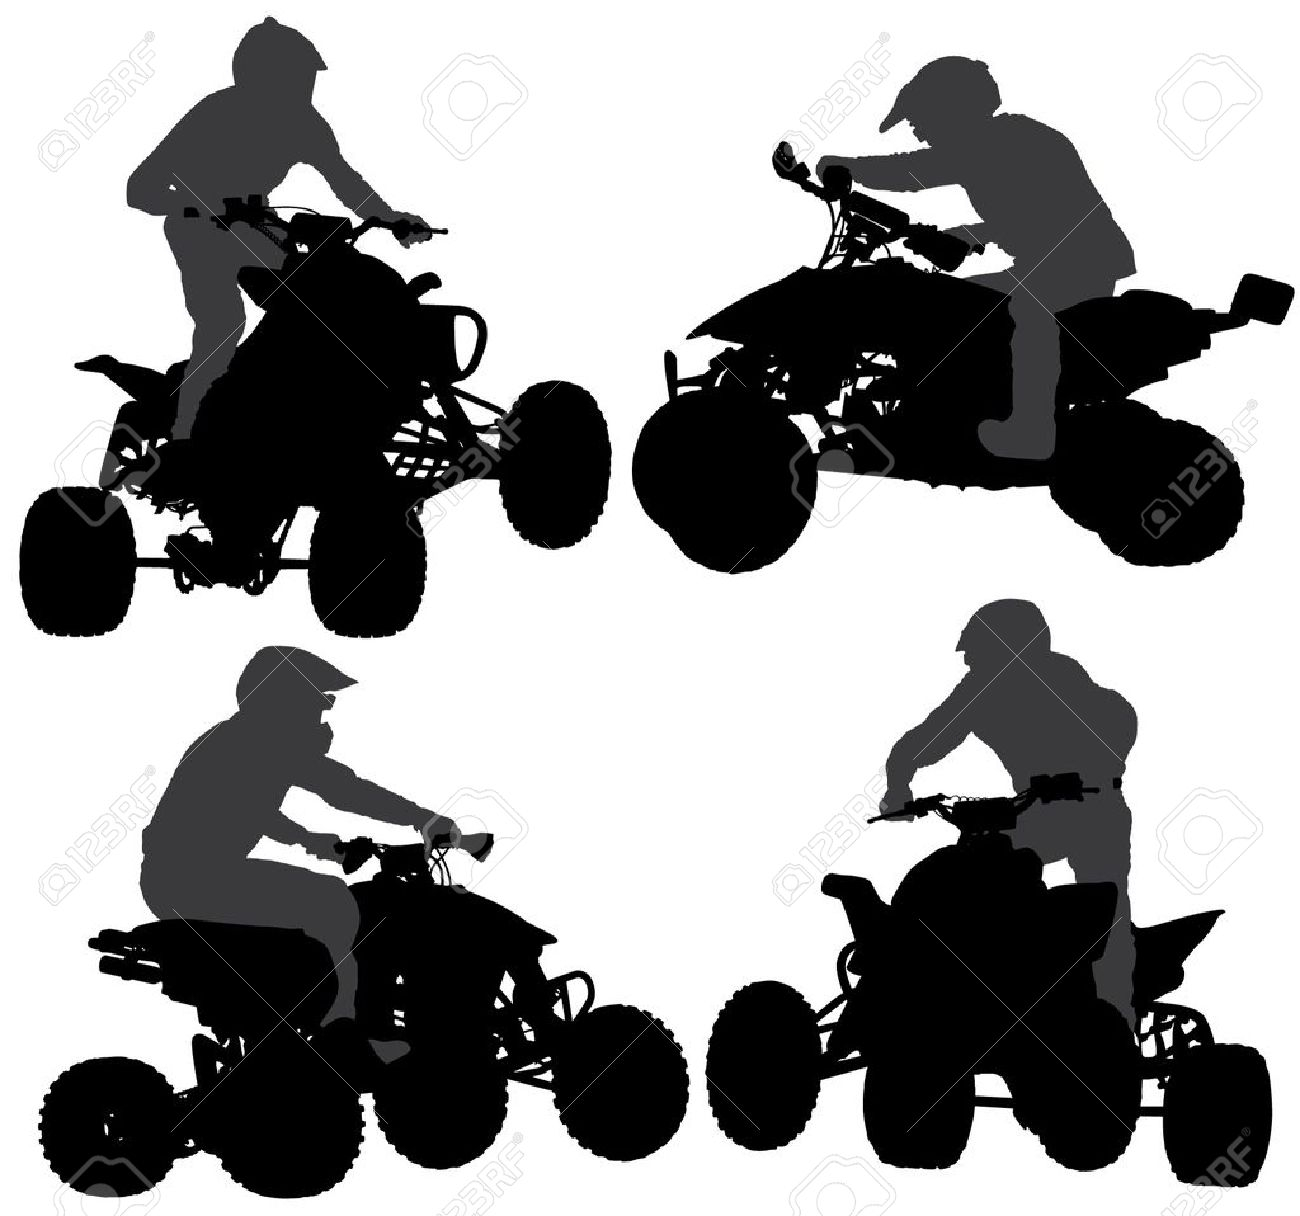 Atv front profile images clipart graphic black and white library Utv Clipart | Free download best Utv Clipart on ClipArtMag.com graphic black and white library